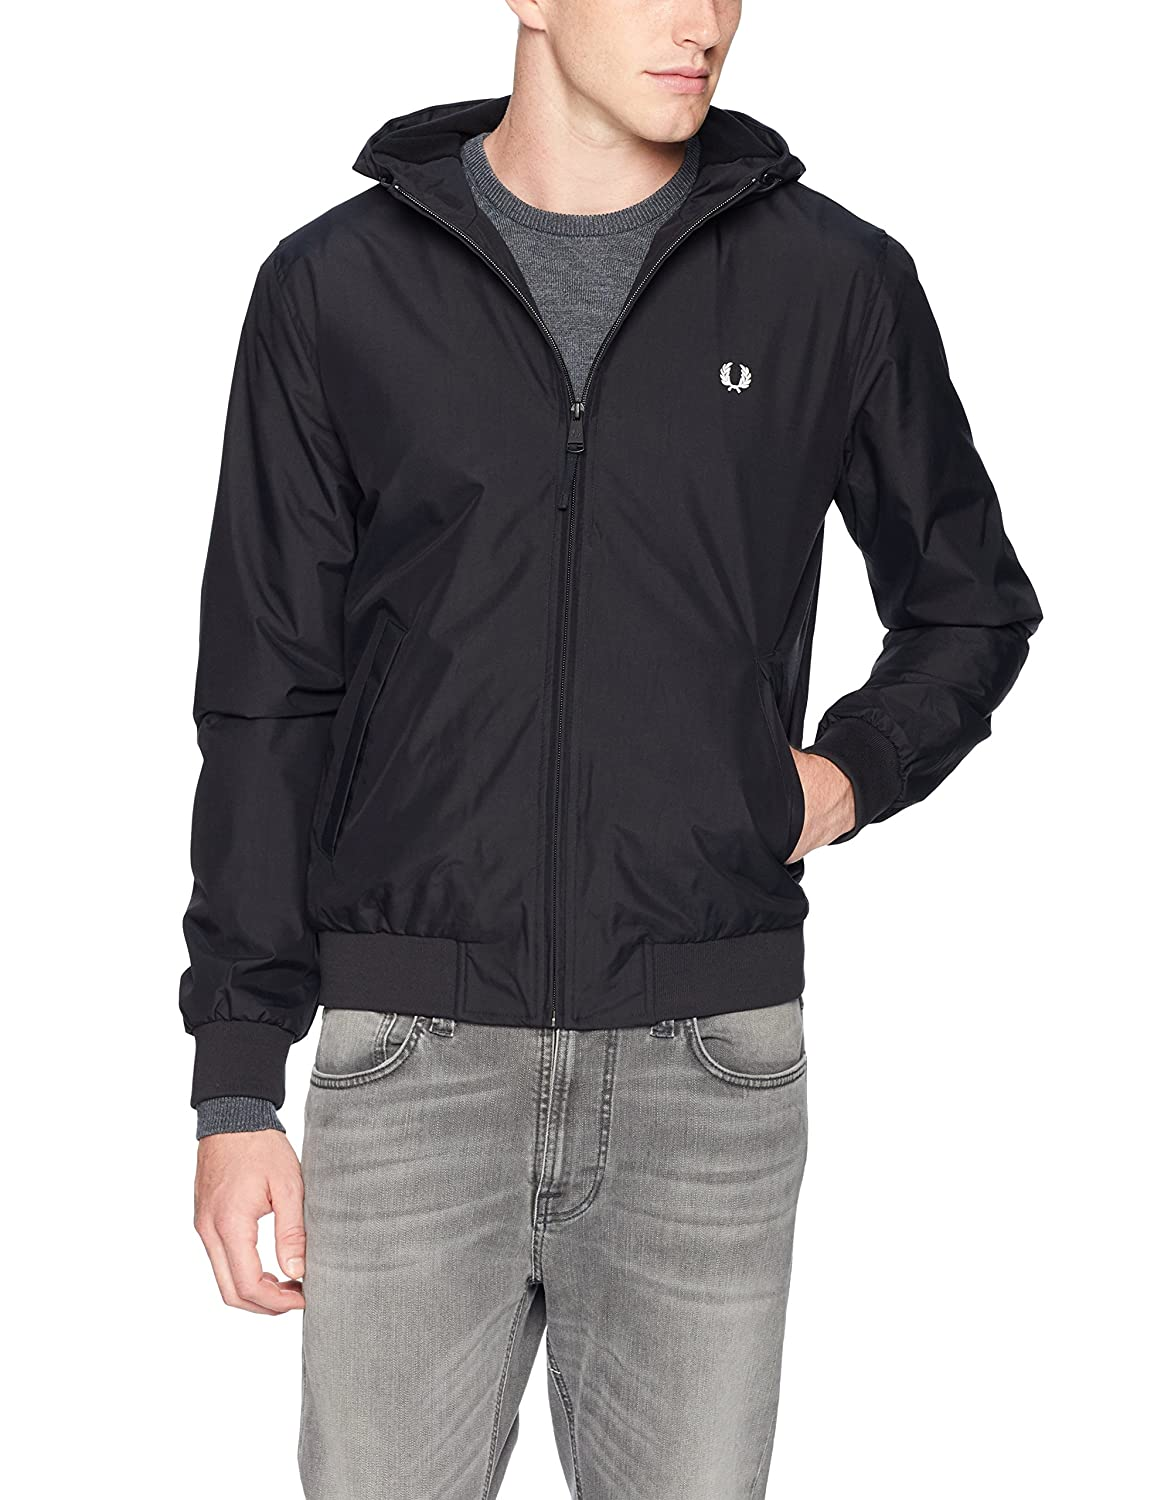 Fred Perry Hombres Chaqueta con Capucha brentham S Negro ...